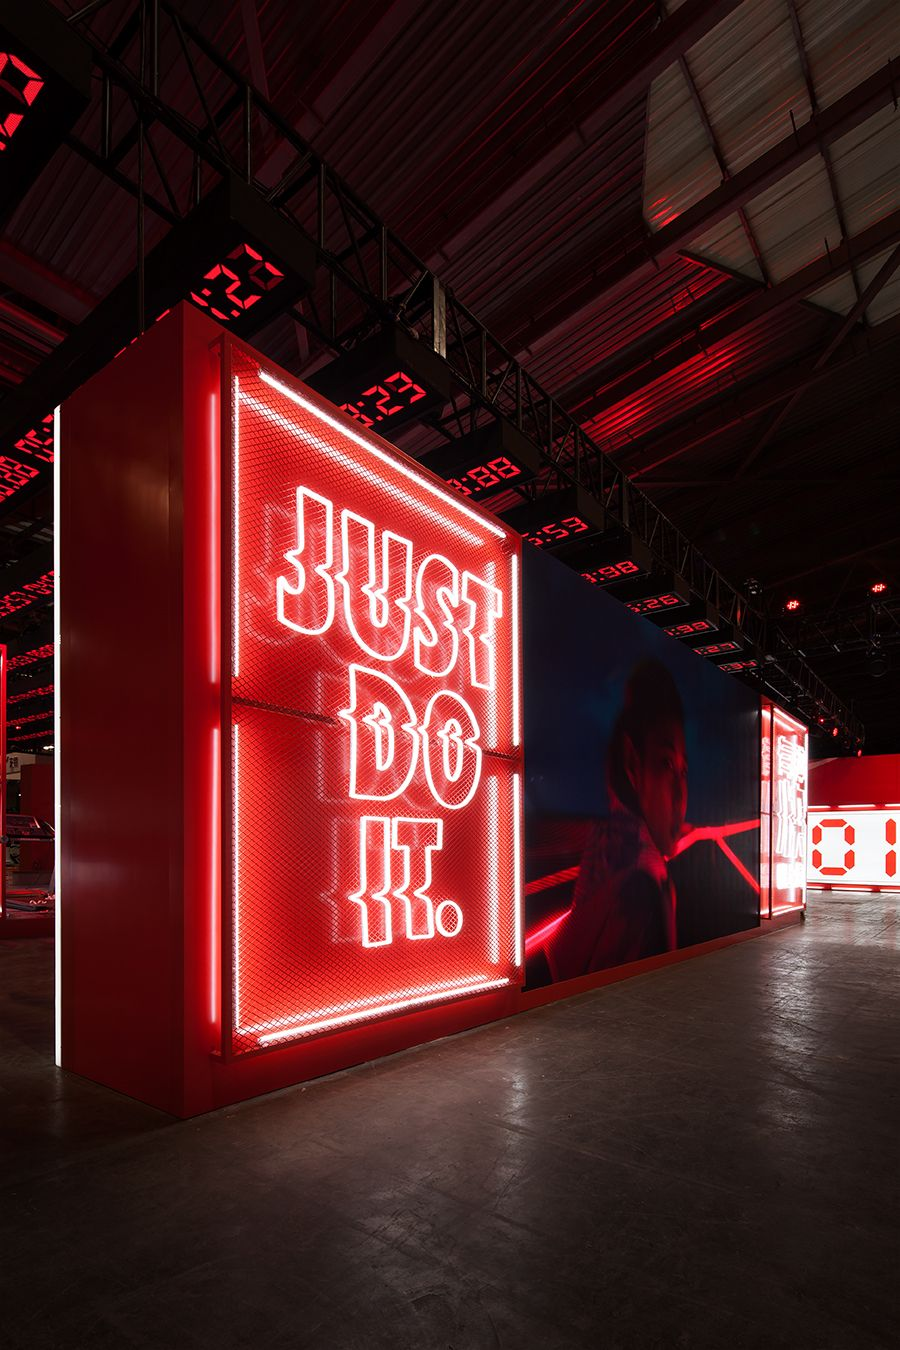 Nike Shanghai Marathon Expo 2017 Design Event Pinterest  # Faire Support Aquarium Beton Cellulaire